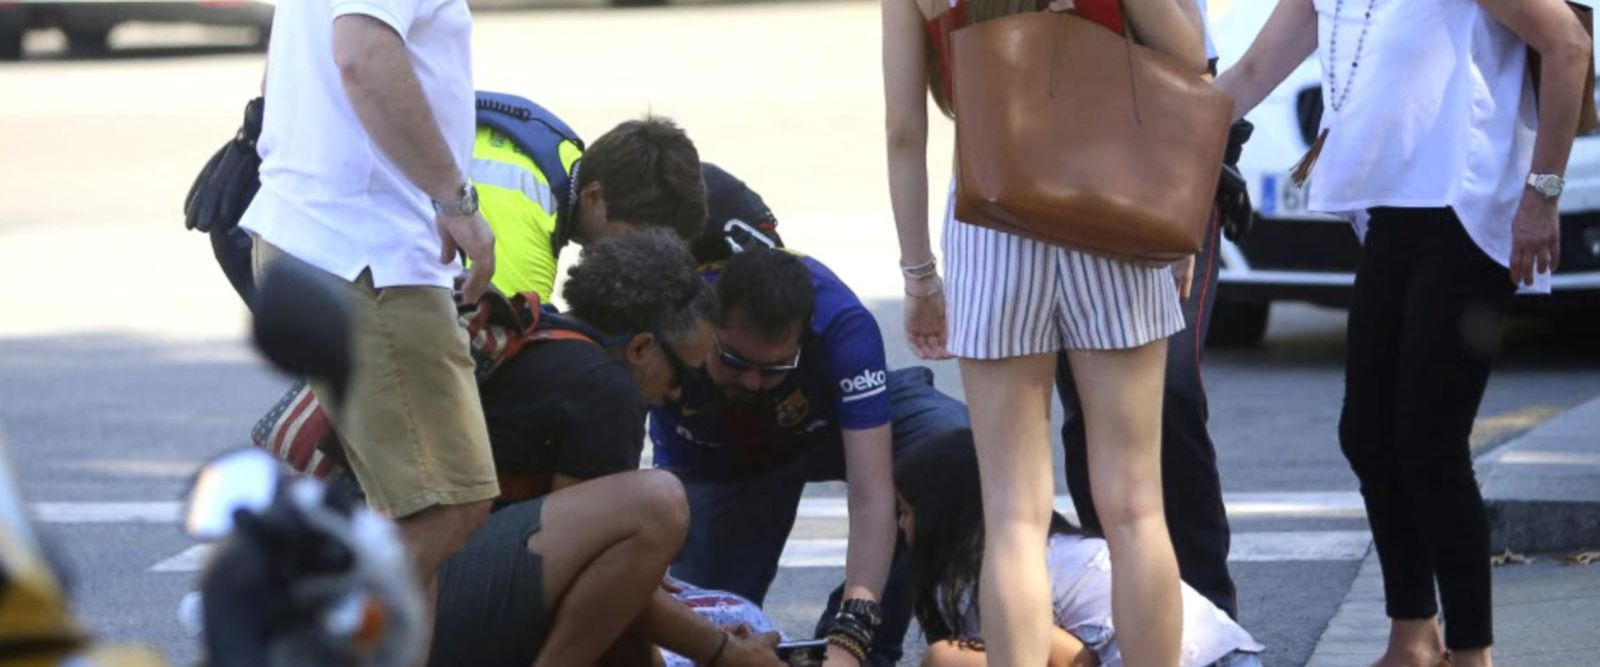 VIDEO: Barcelona terror attack eyewitnesses describe chaotic scene